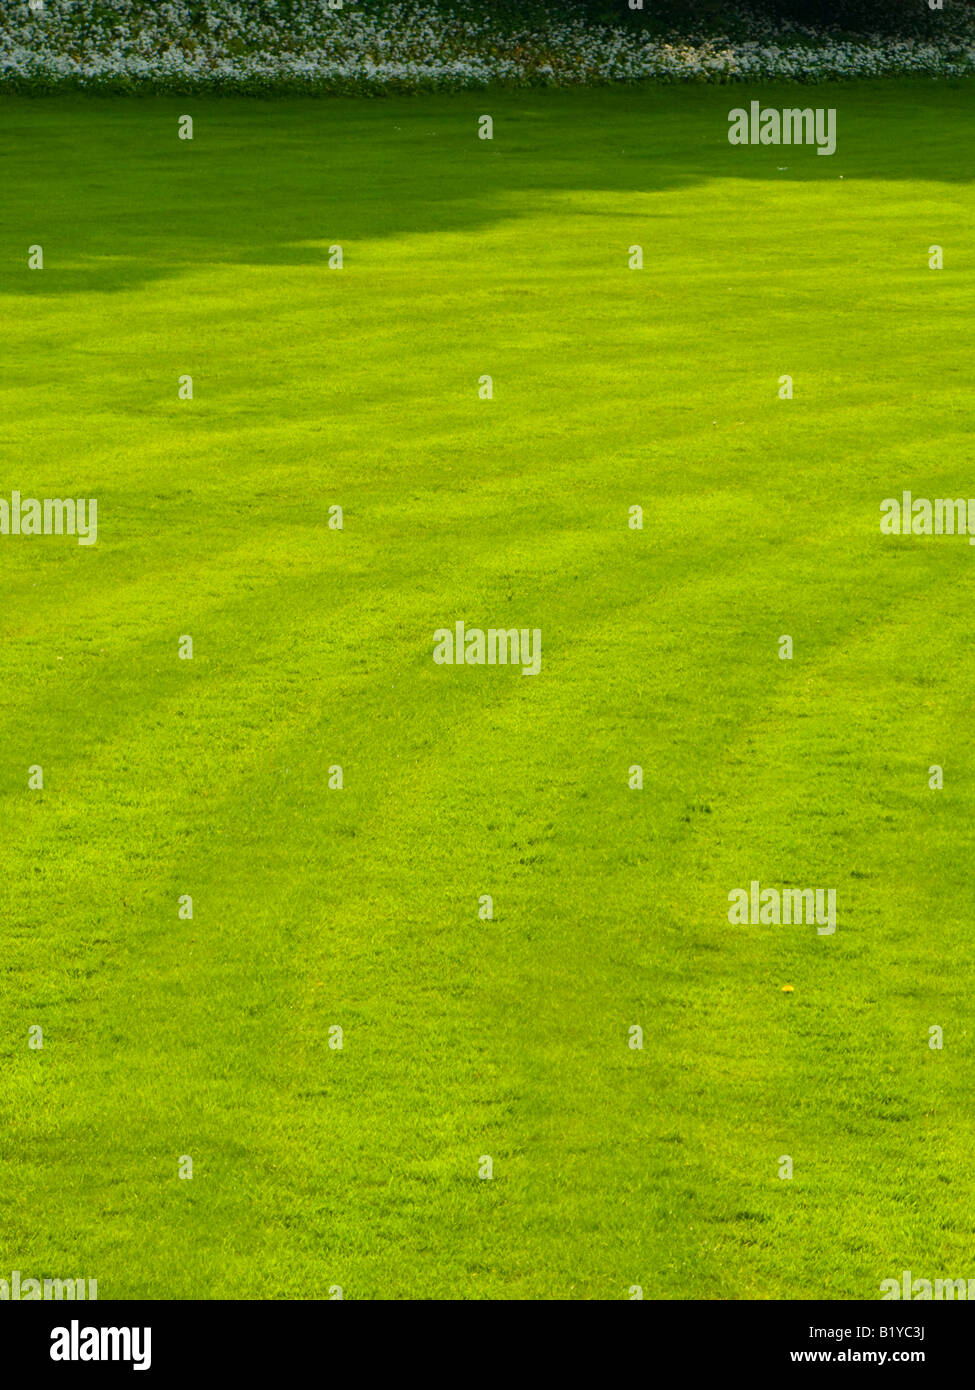 Lawn with mowing lines in the grass - Stock Image